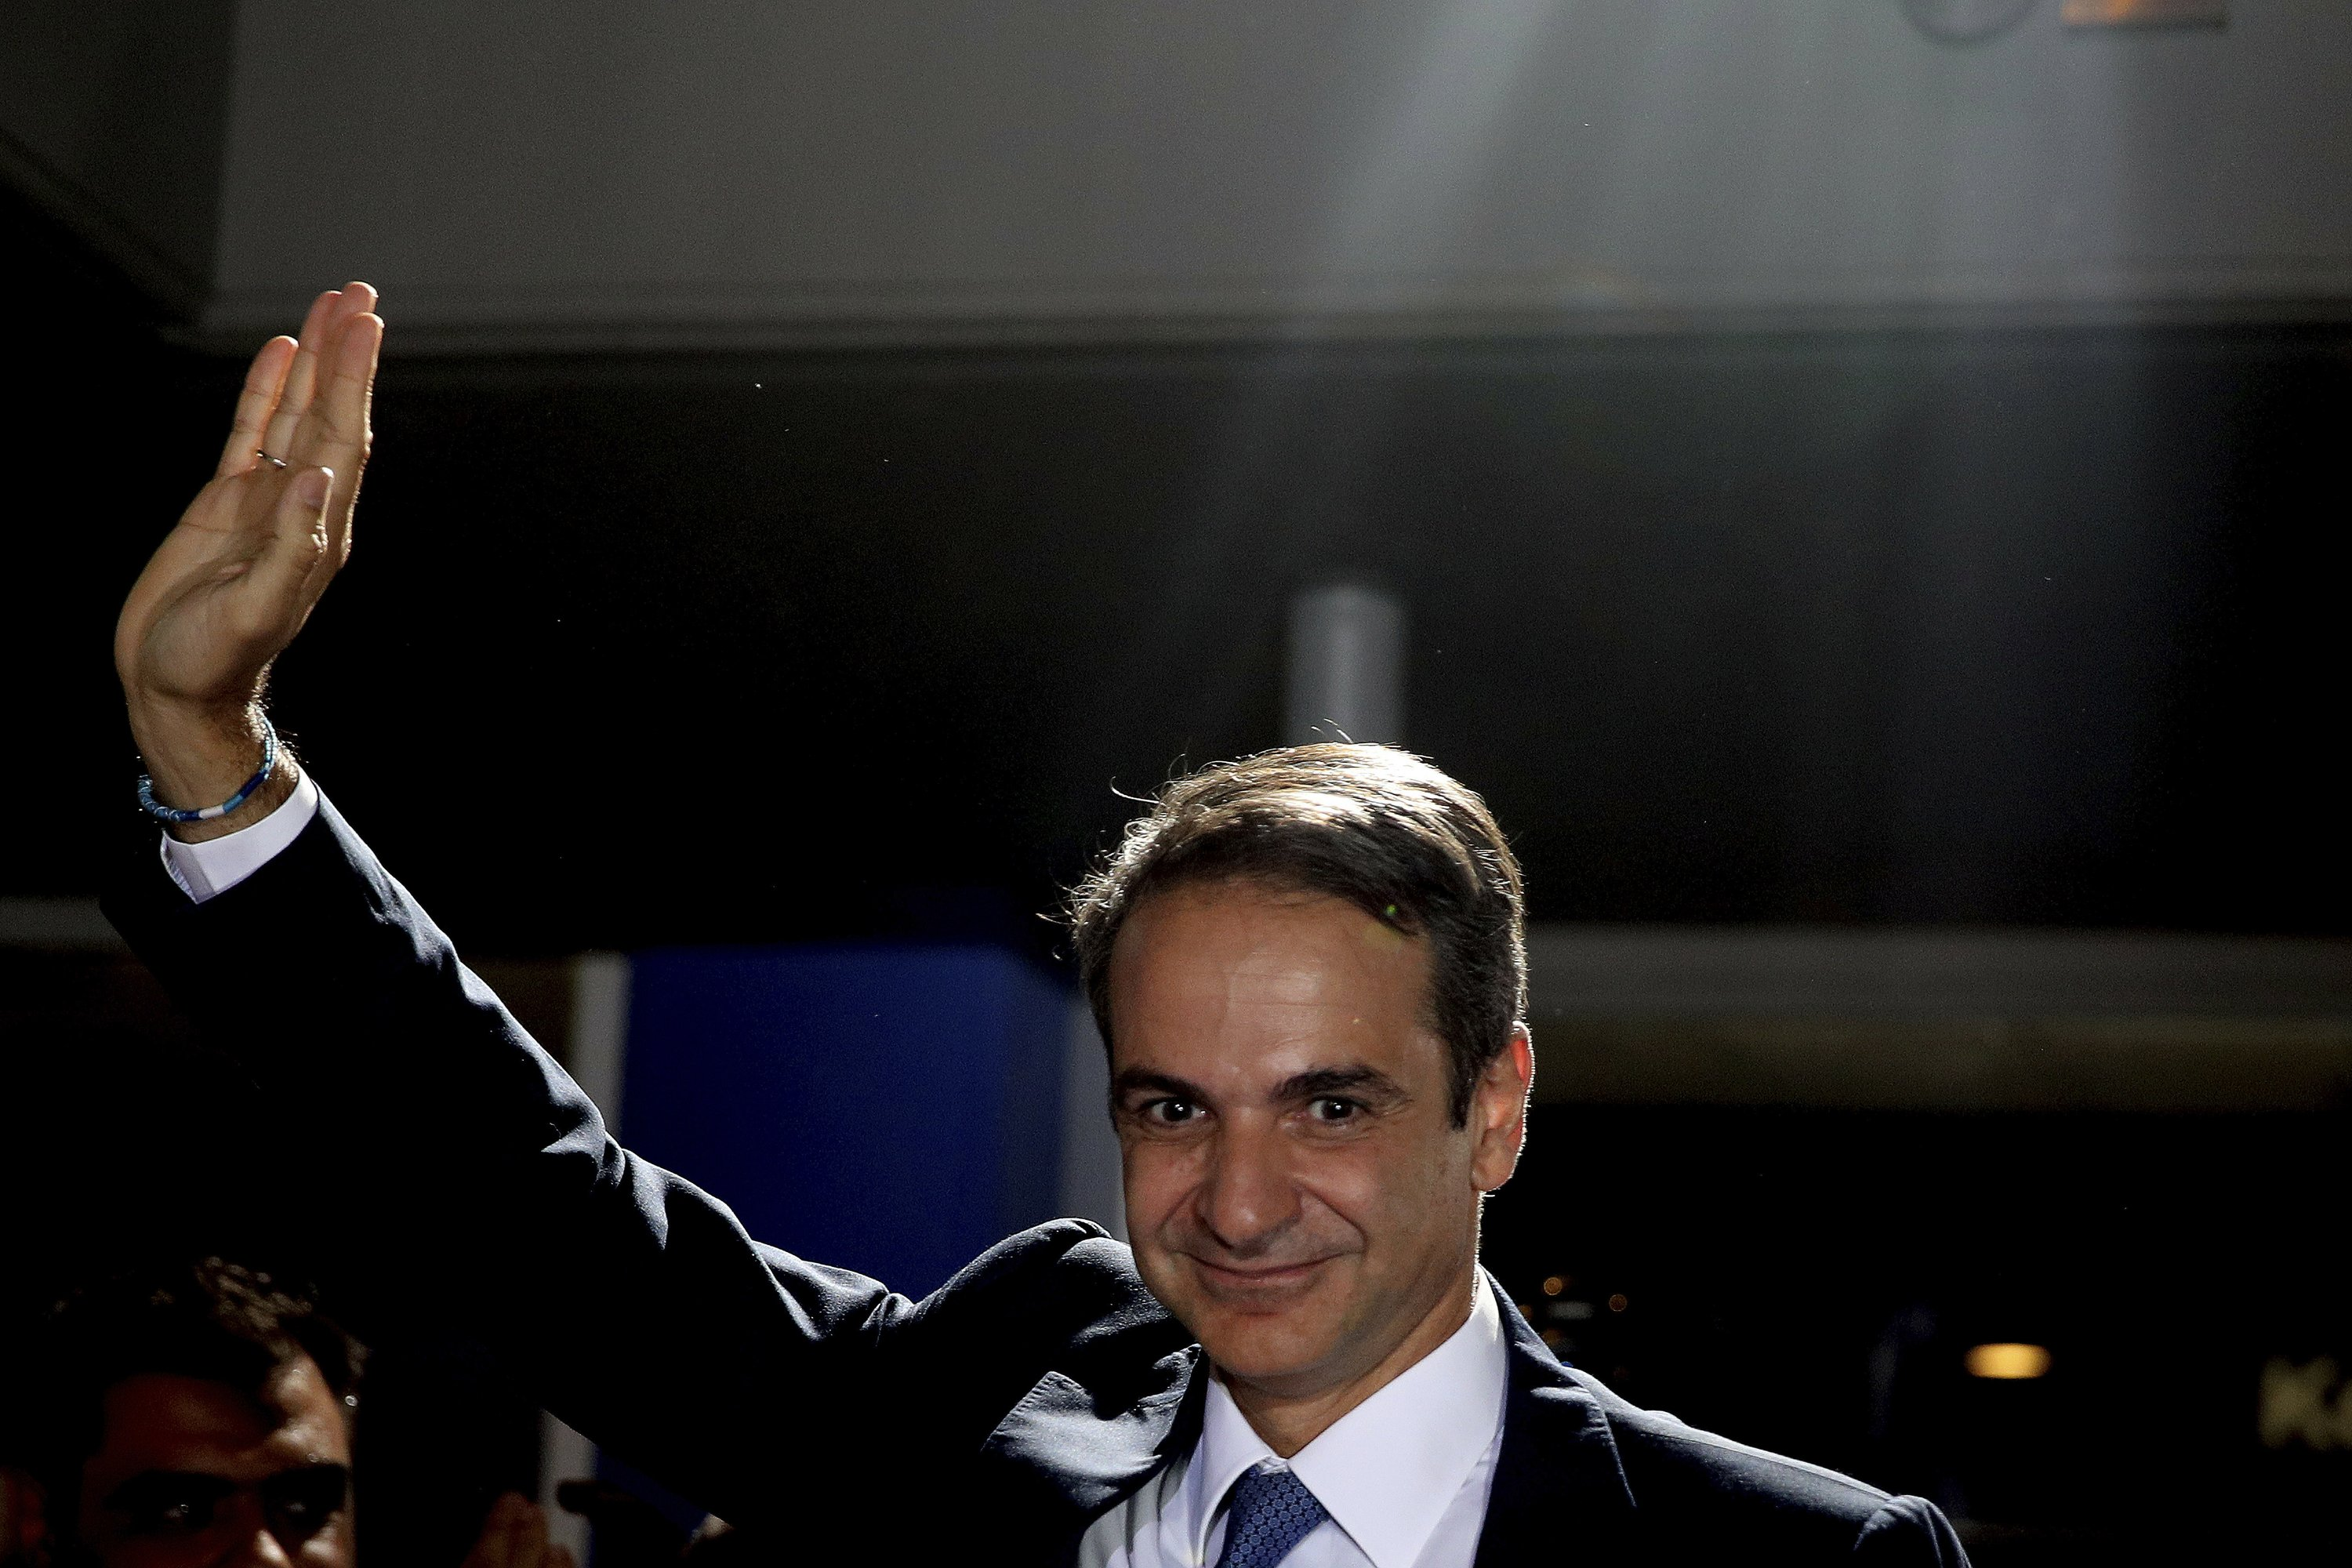 Greek election winner to be sworn in as prime minister